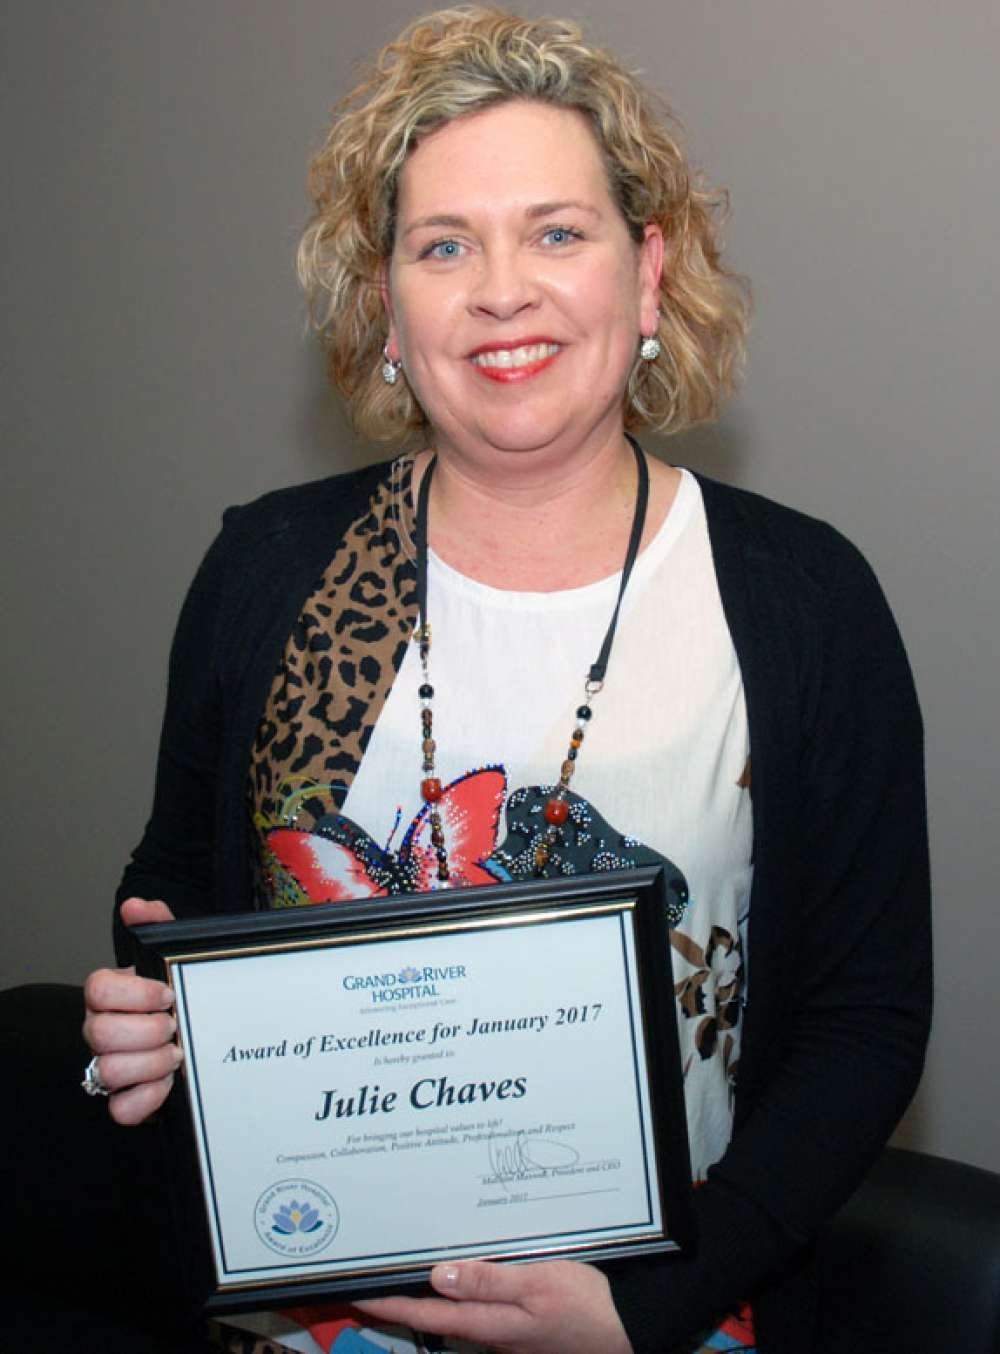 Aoe Julie Chaves Certificate